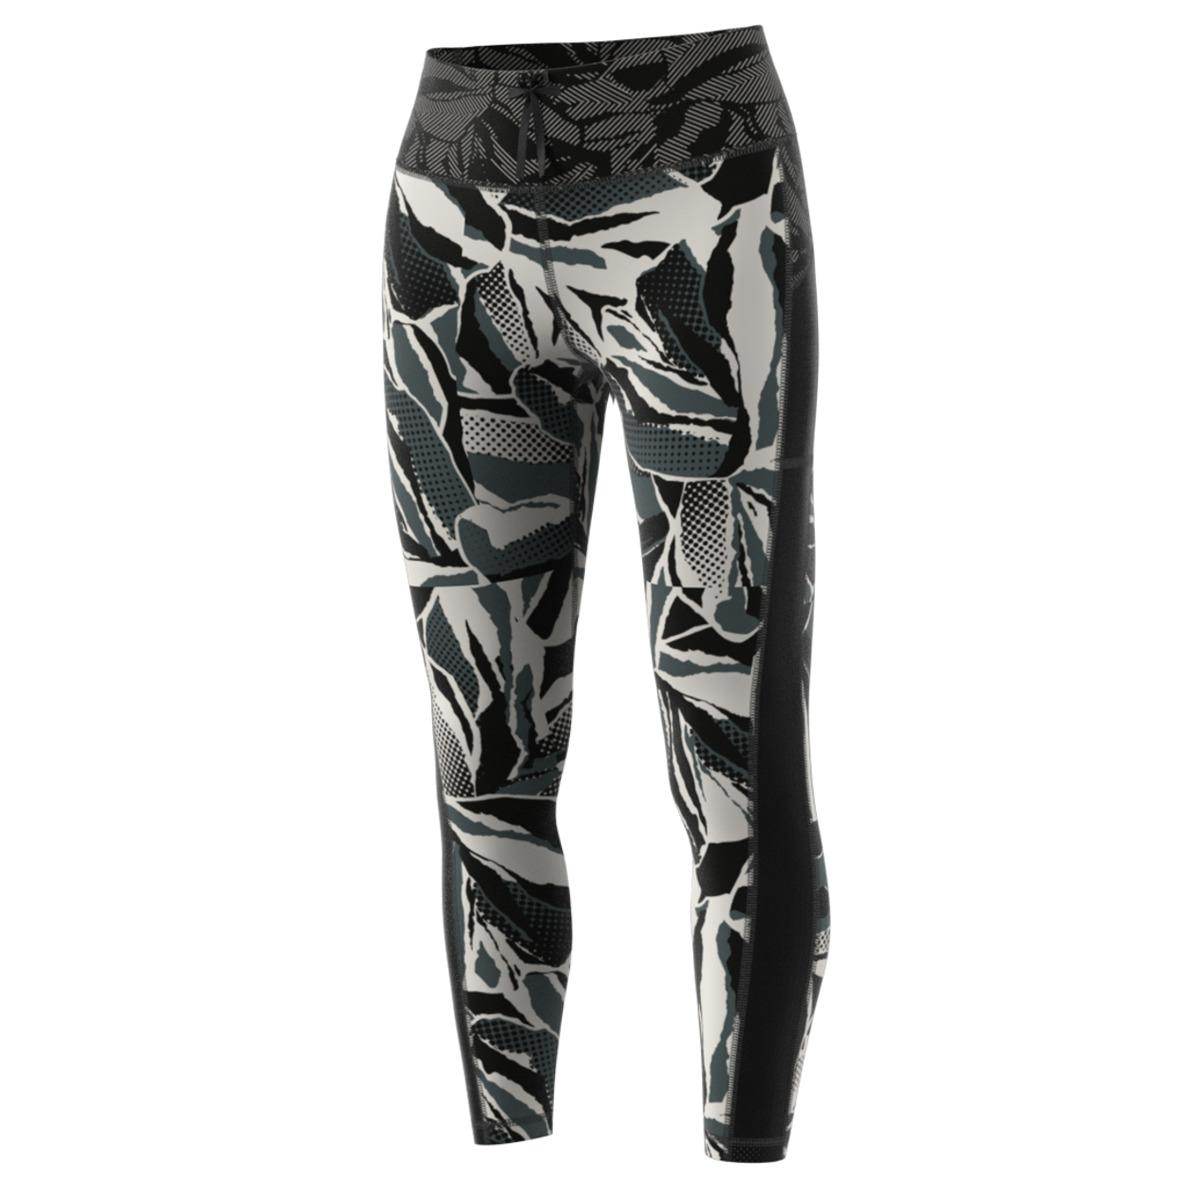 36ad9af03fc adidas. Women's Black Bt Hr 7/8 leggings. $80 From El Corte Ingles